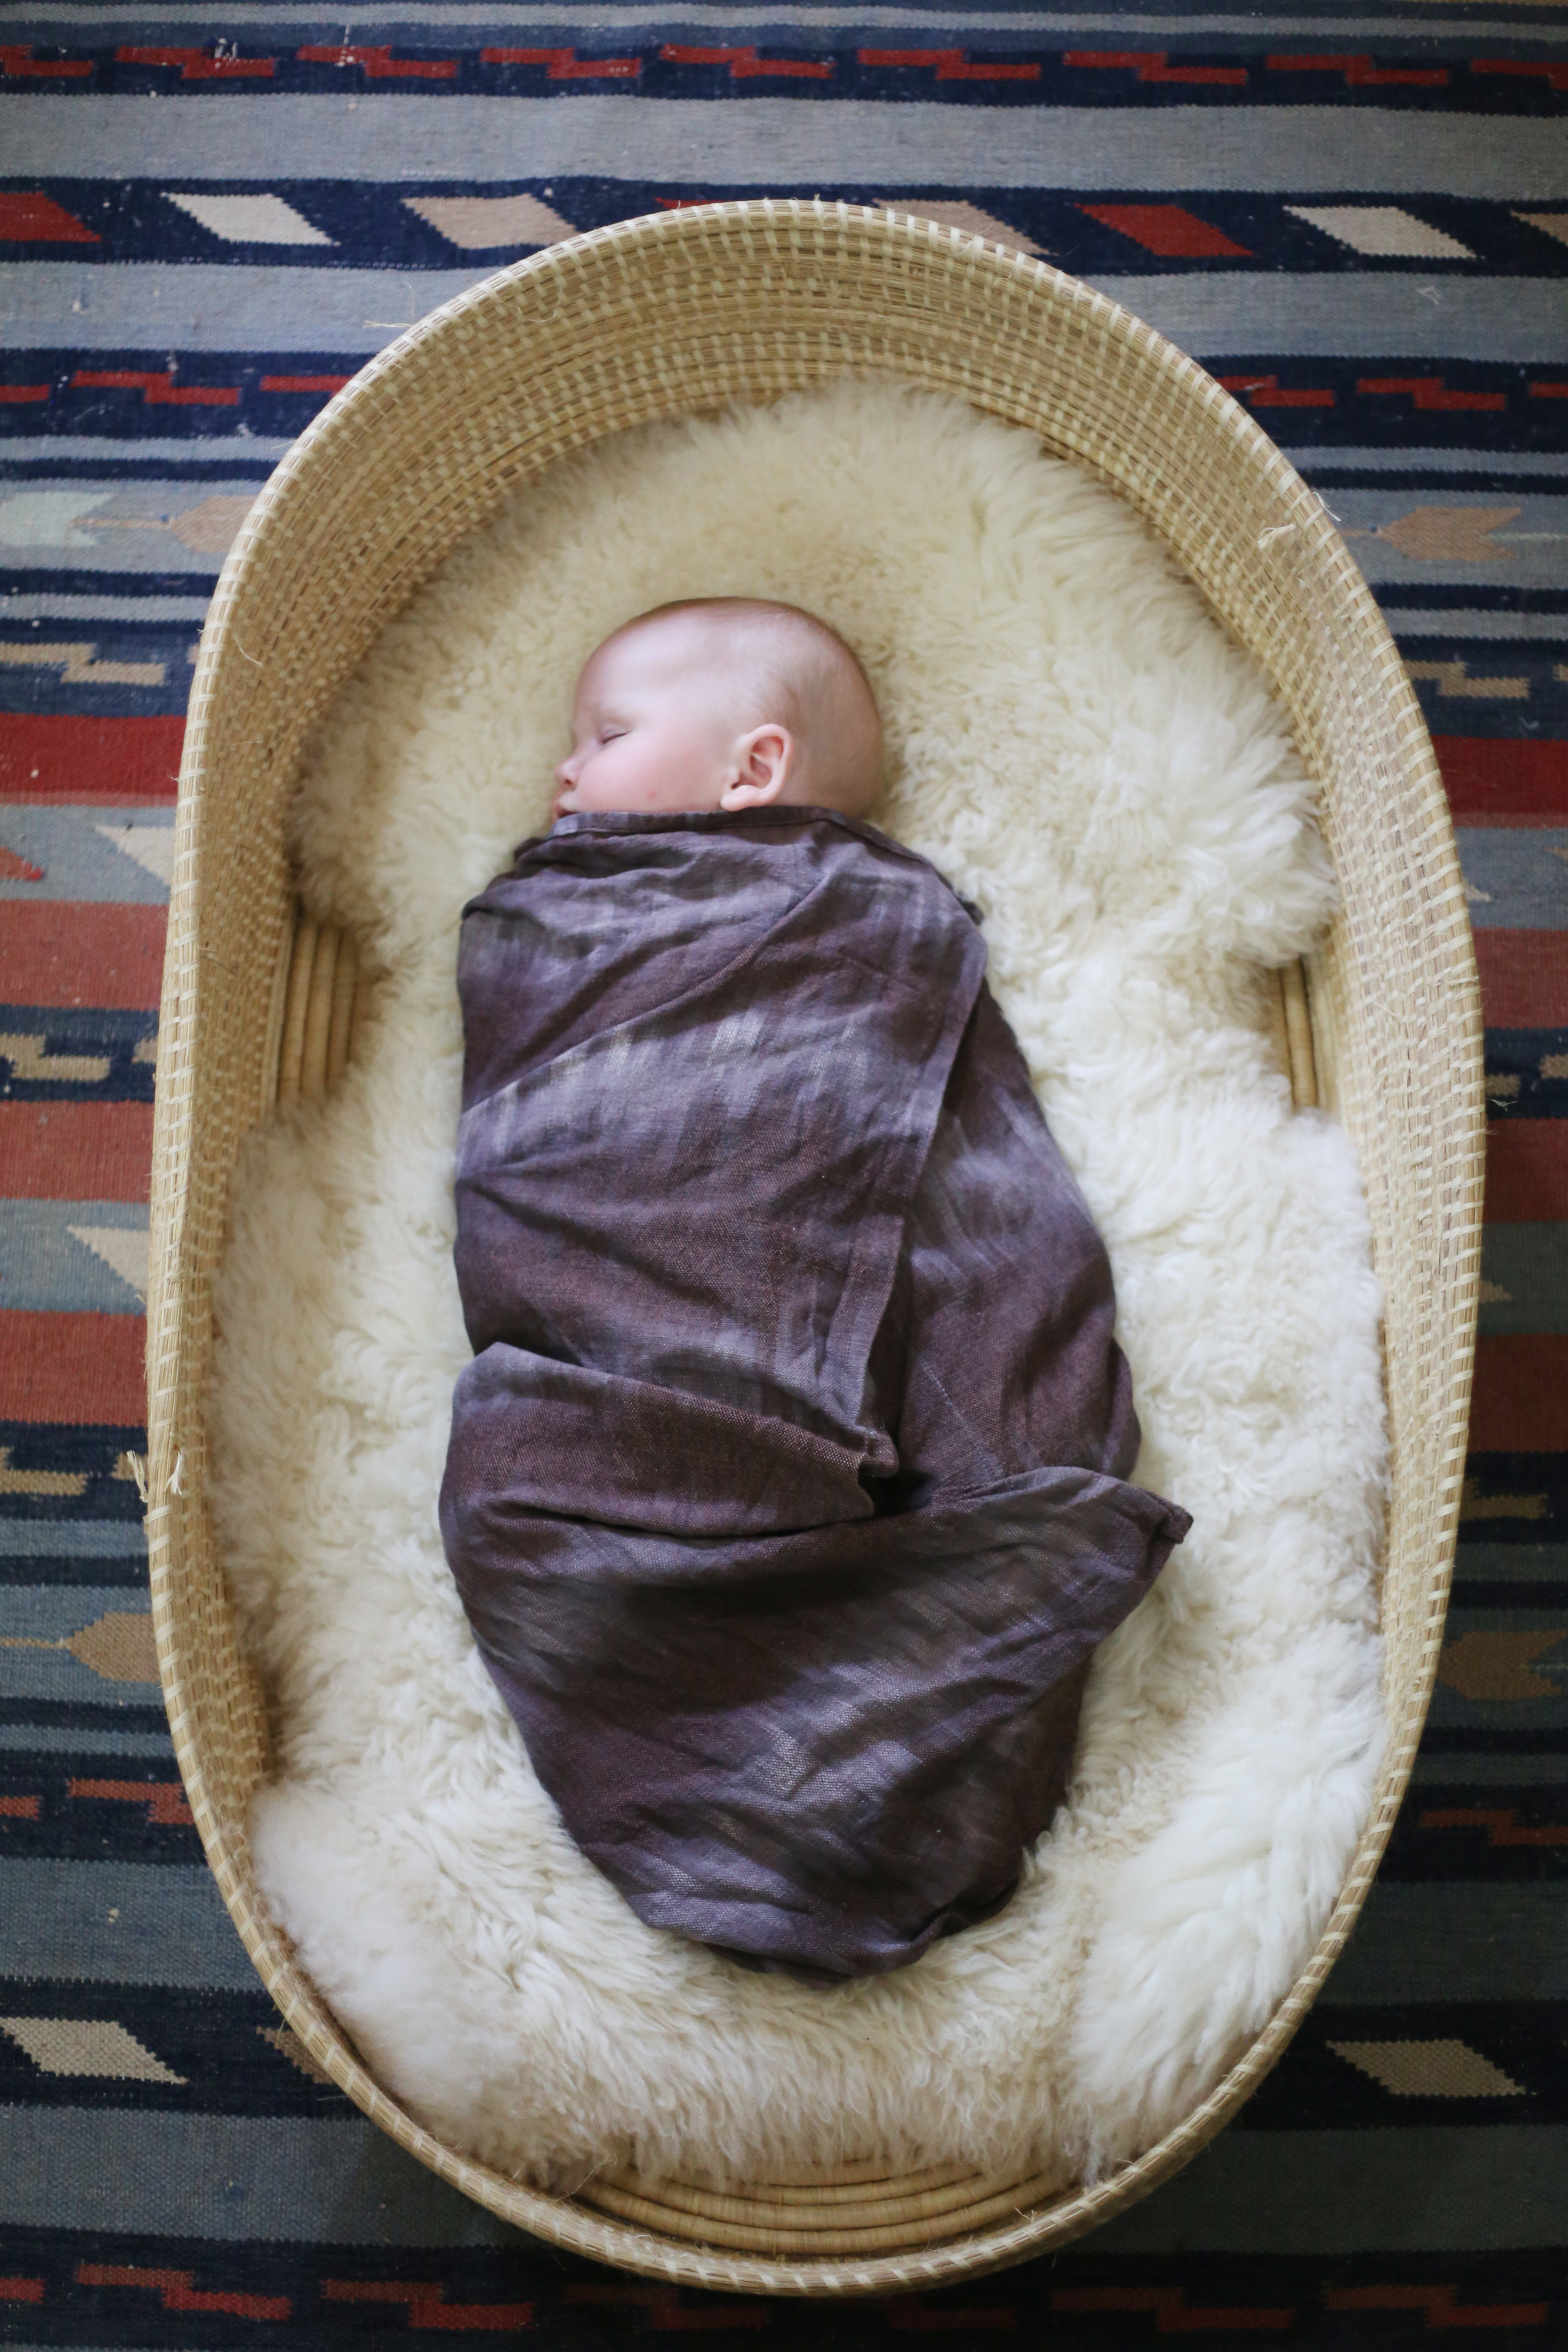 Moses basket woven in western Uganda and swaddle blanket handwoven from Ugandan cotton. Both are available at  Baby Lionheart.  Sheepskin rug from  Ecowool .